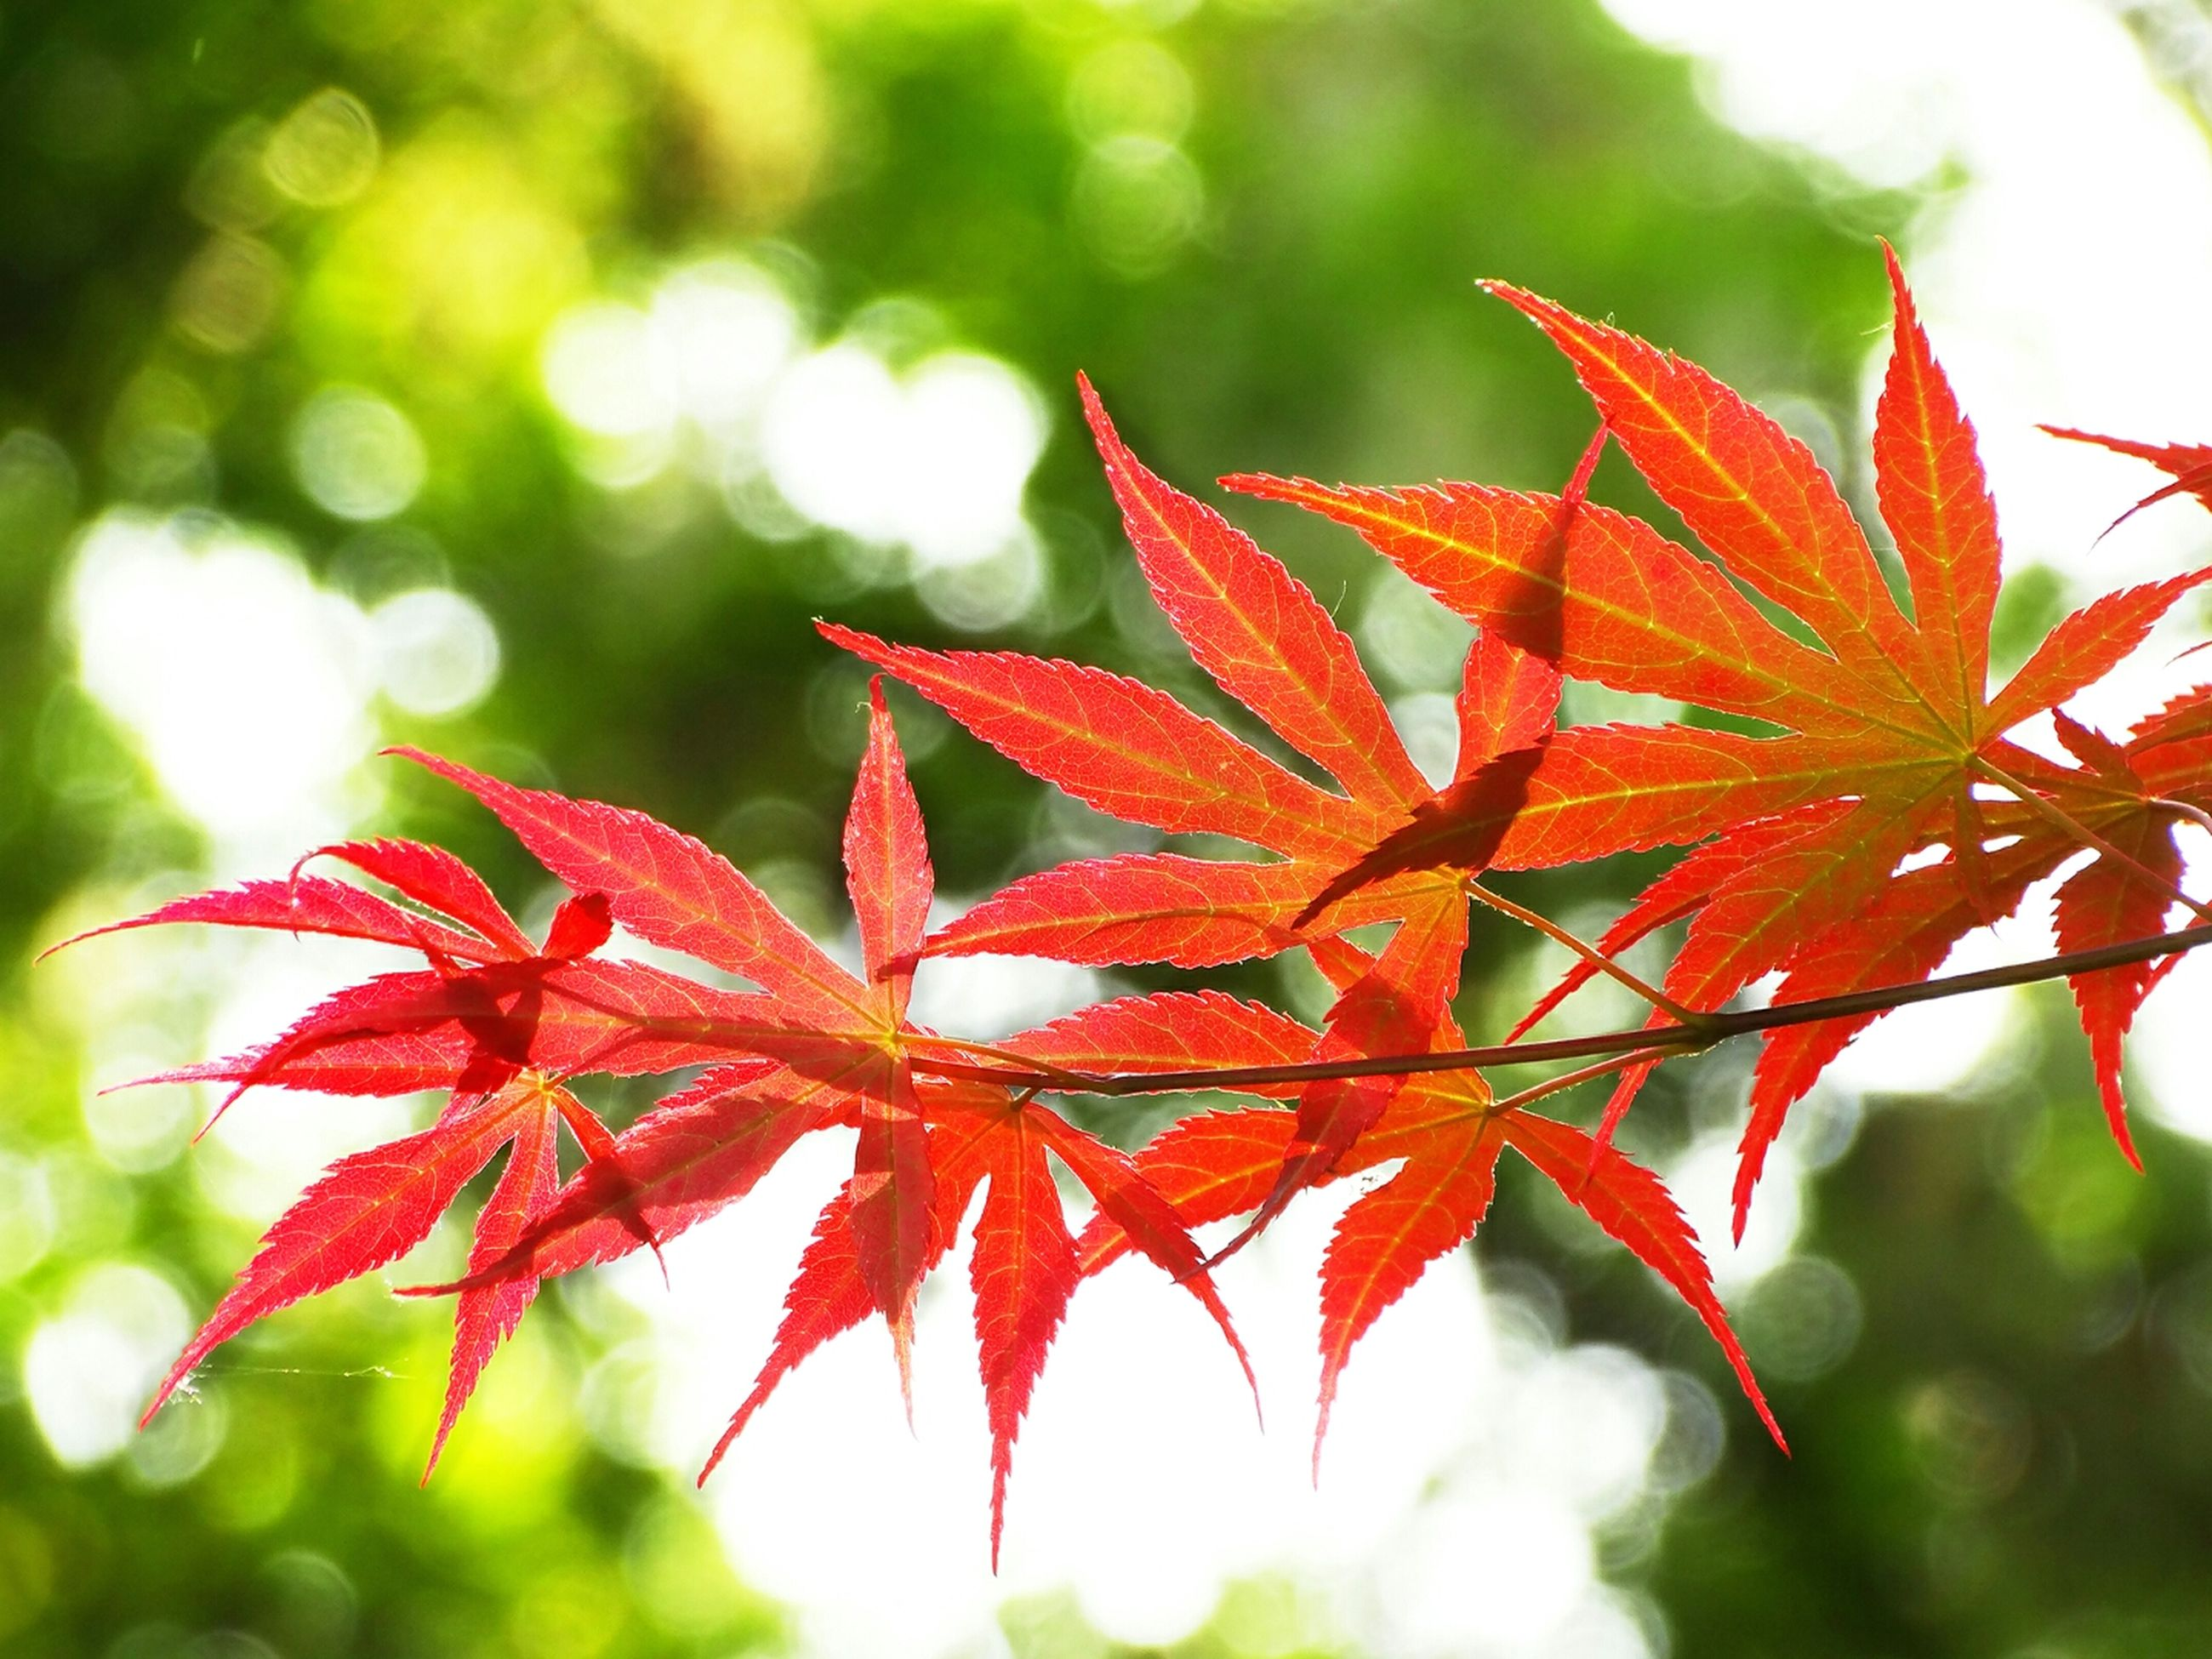 red, leaf, autumn, change, focus on foreground, season, close-up, maple leaf, nature, leaves, growth, leaf vein, orange color, branch, beauty in nature, tree, selective focus, tranquility, day, natural pattern